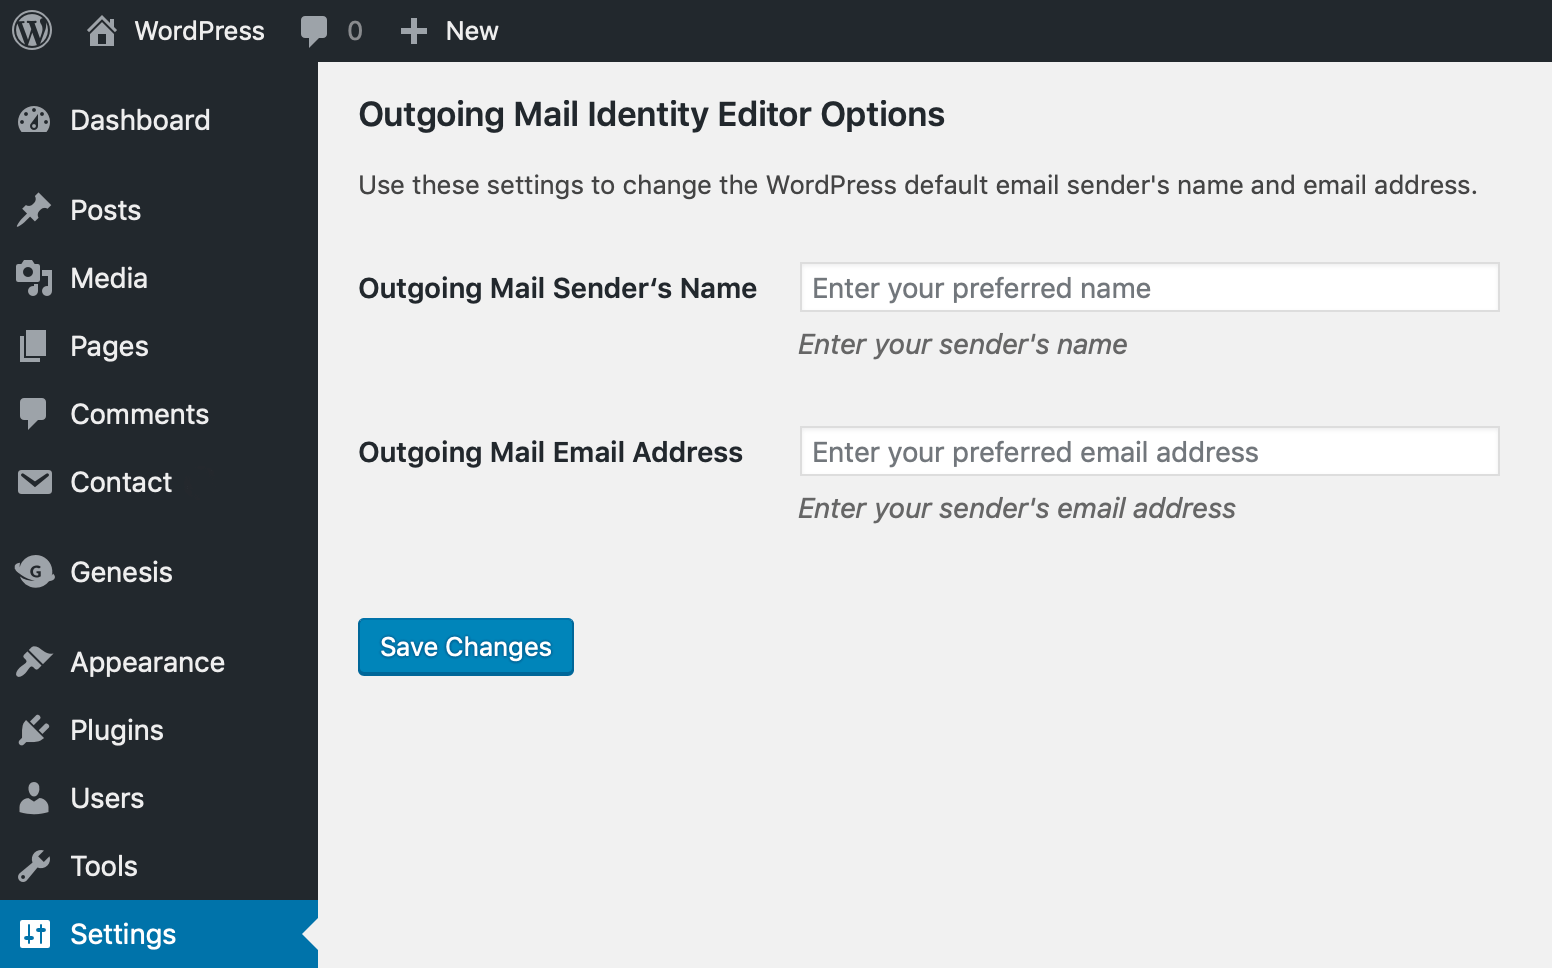 The settings screen in Outgoing Mail Identity Editor